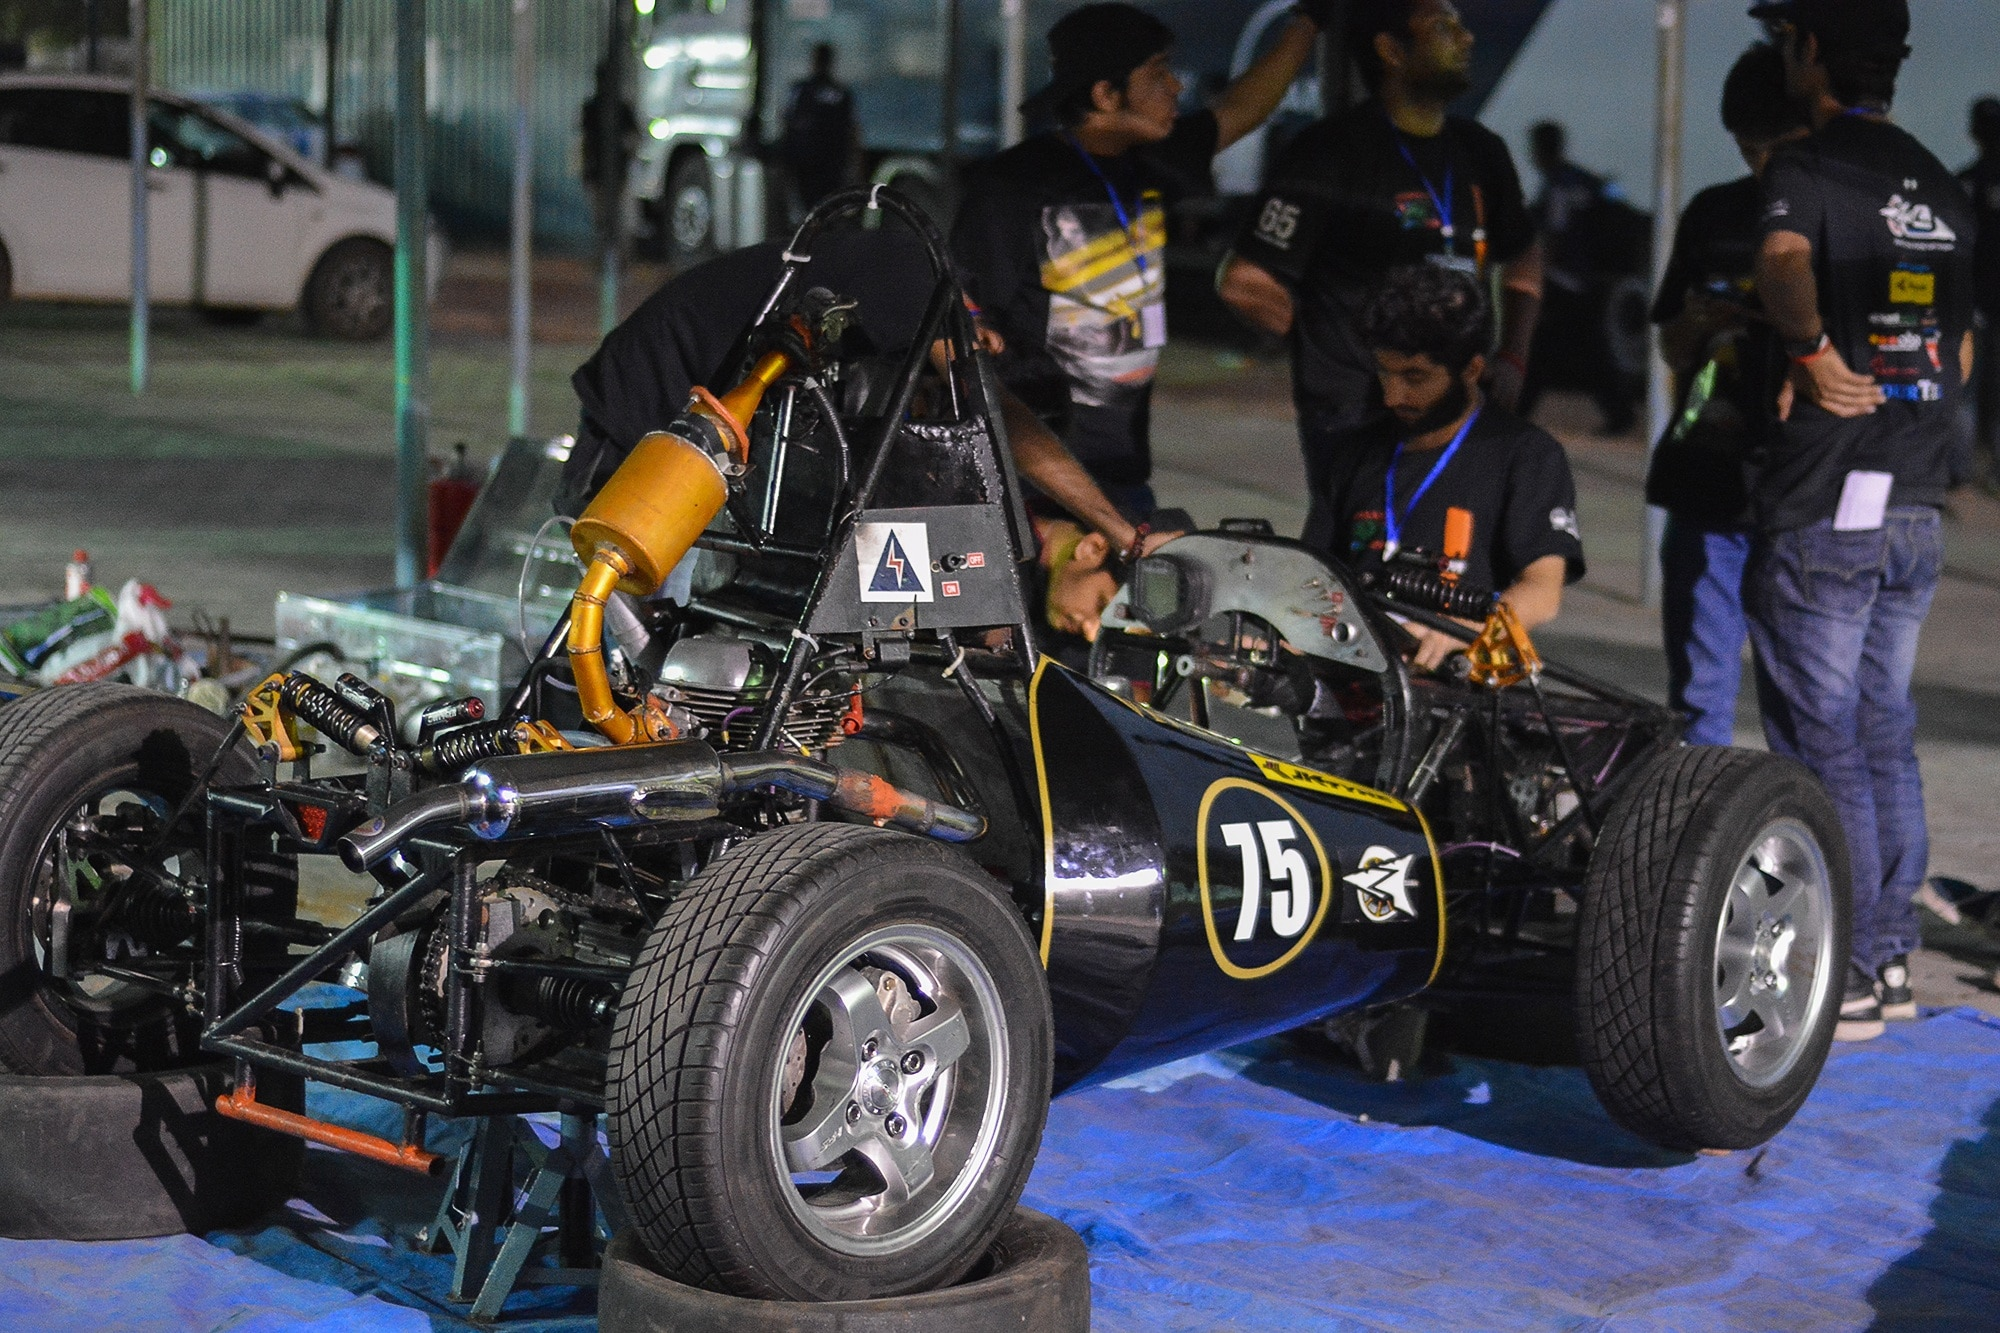 Team Orion Racing of Mumbai's KJ Somaiya Won the First JK Tyre Formula Design Challenge 2015